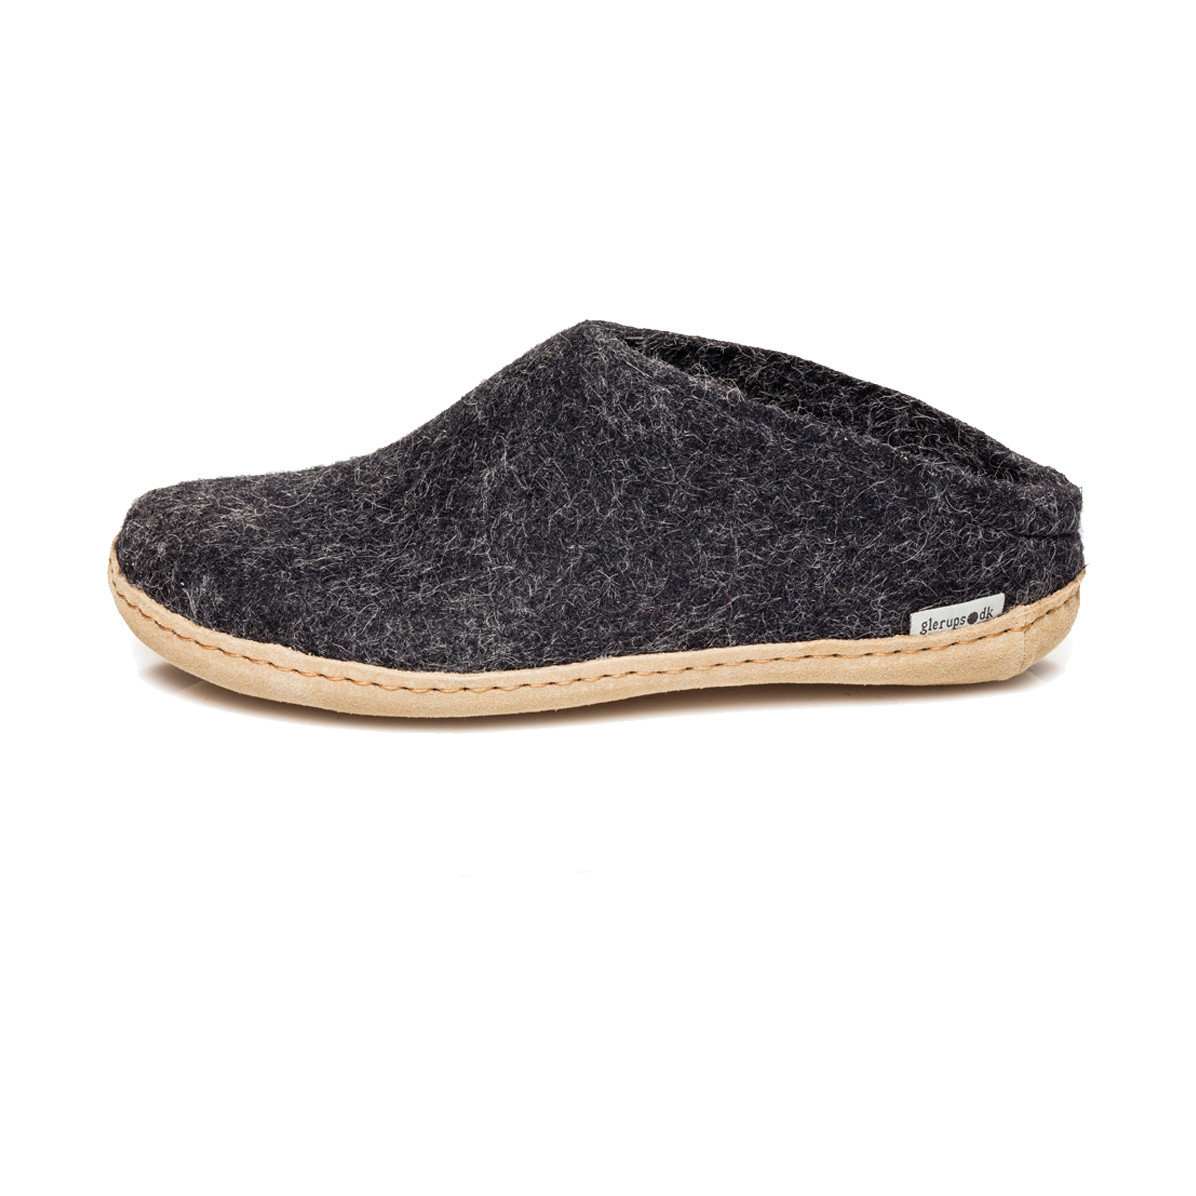 Glerups Glerups Women's Slipper Leather Sole Charcoal